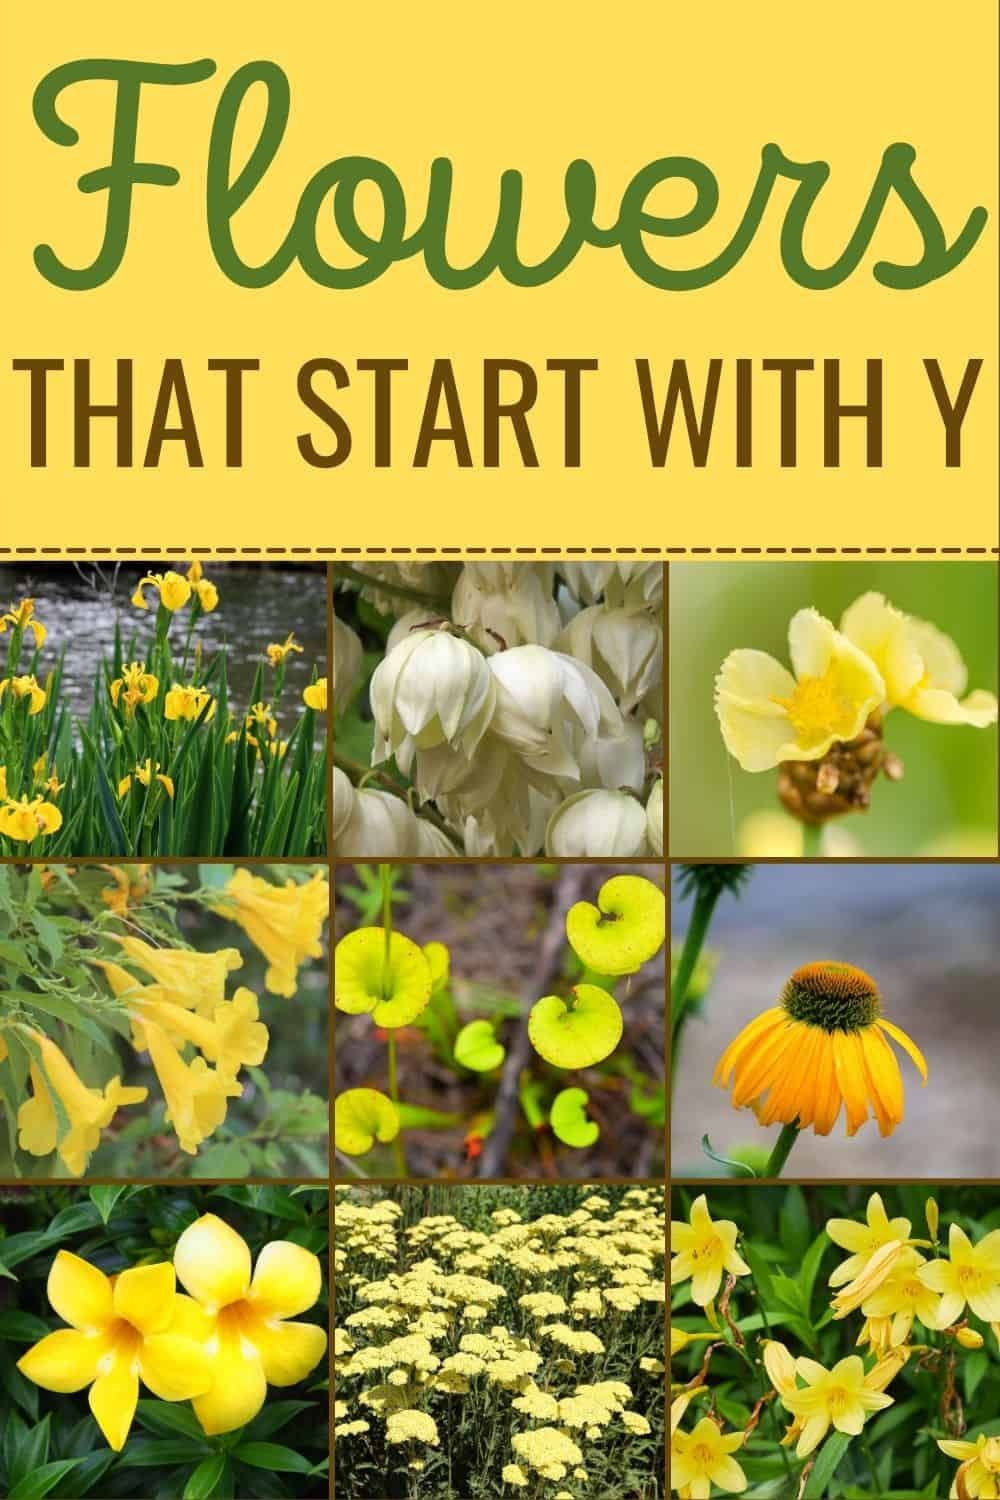 Flowers that start with Y